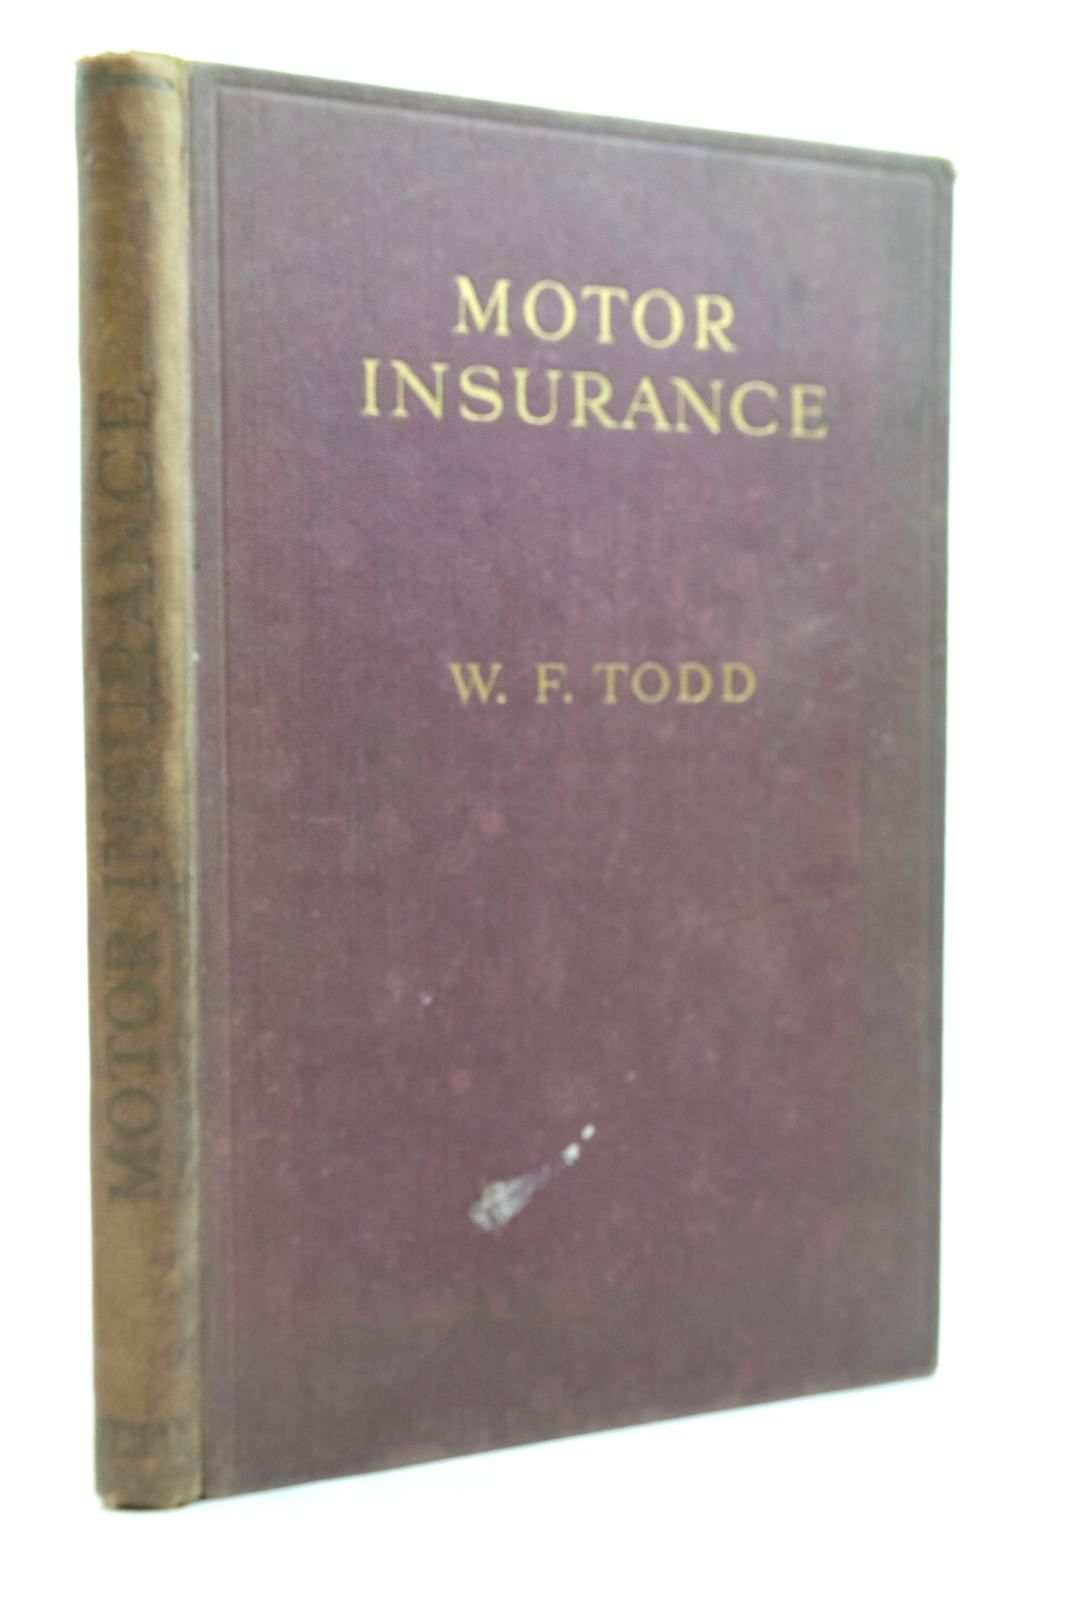 Photo of MOTOR INSURANCE- Stock Number: 2134621